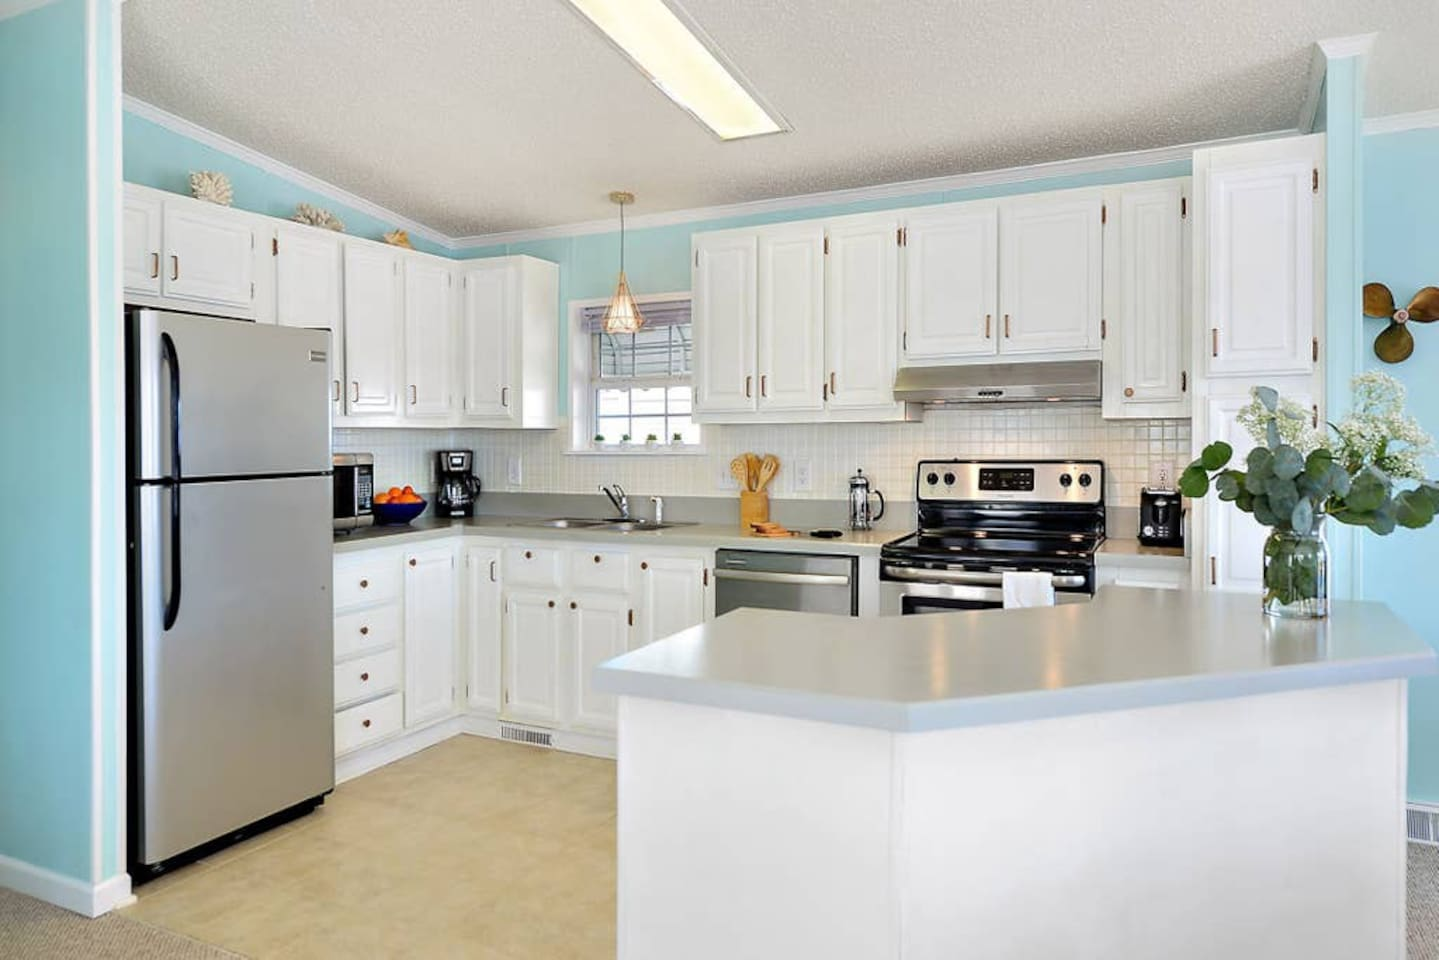 Large, newly renovated, open concept kitchen with stainless steal appliances, lots of counter space and great views of the bay as you cook your meals at home!